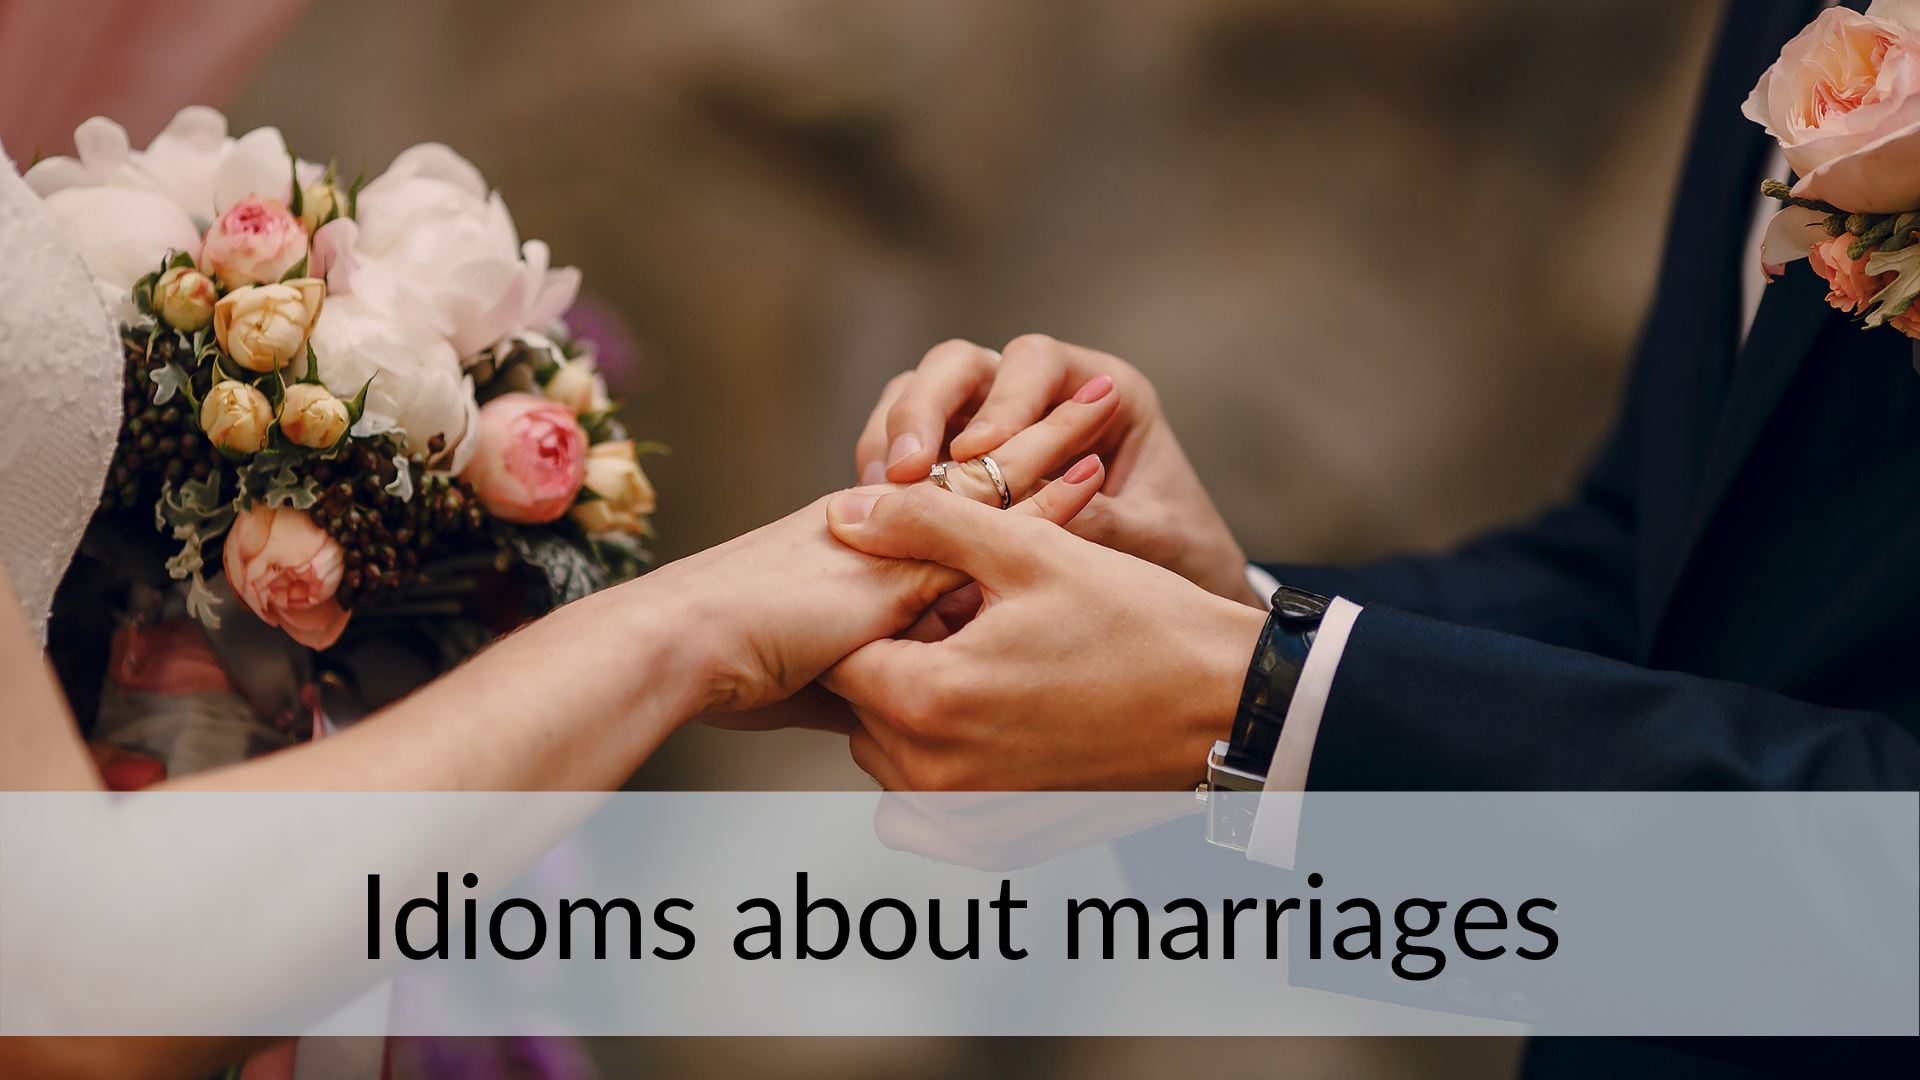 idioms about marriage